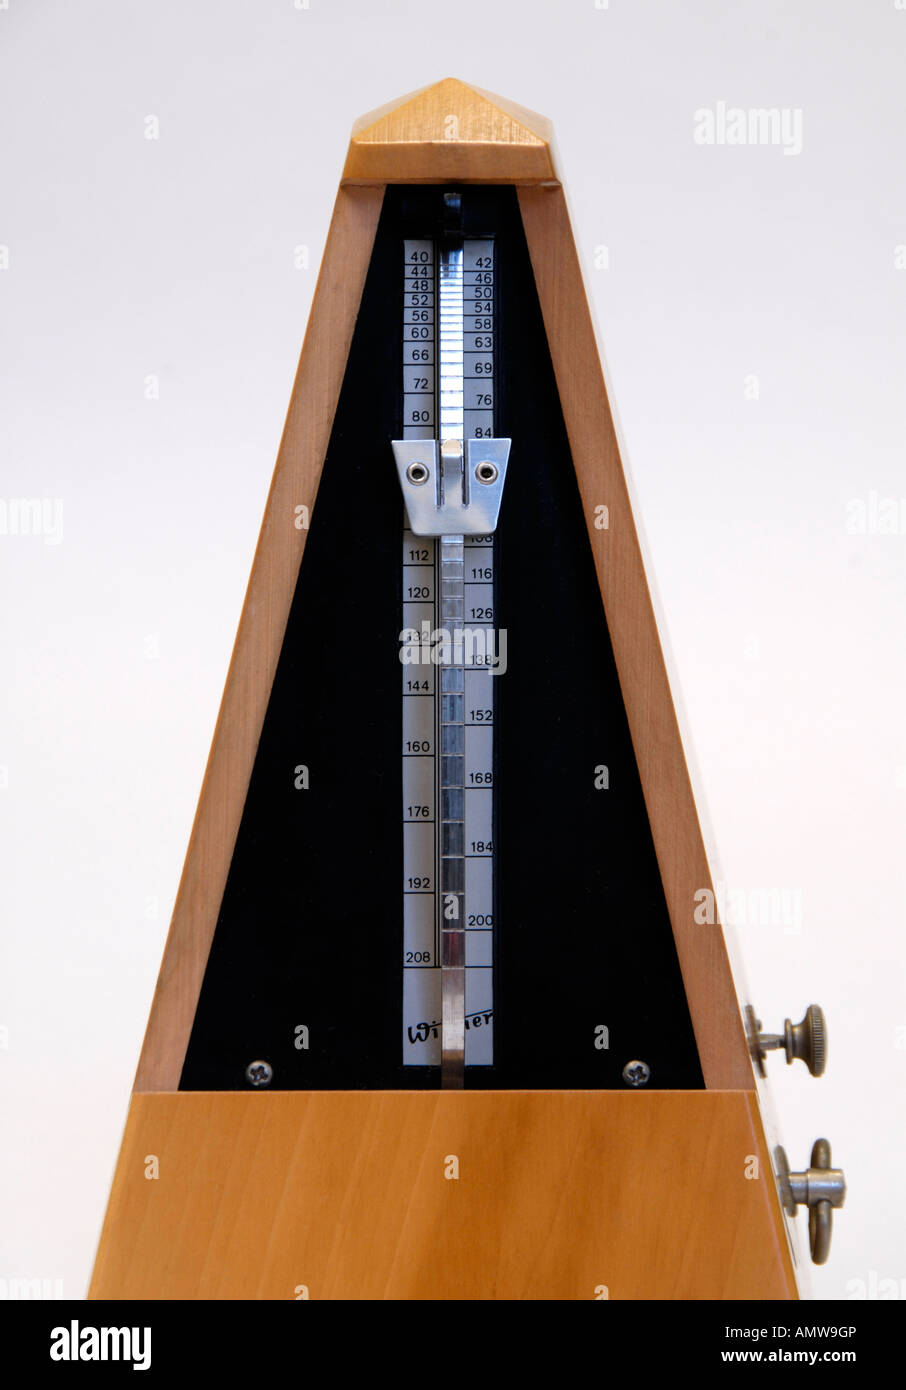 Wittner beechwood clockwork metronome with cover removed . Made in Germany . - Stock Image